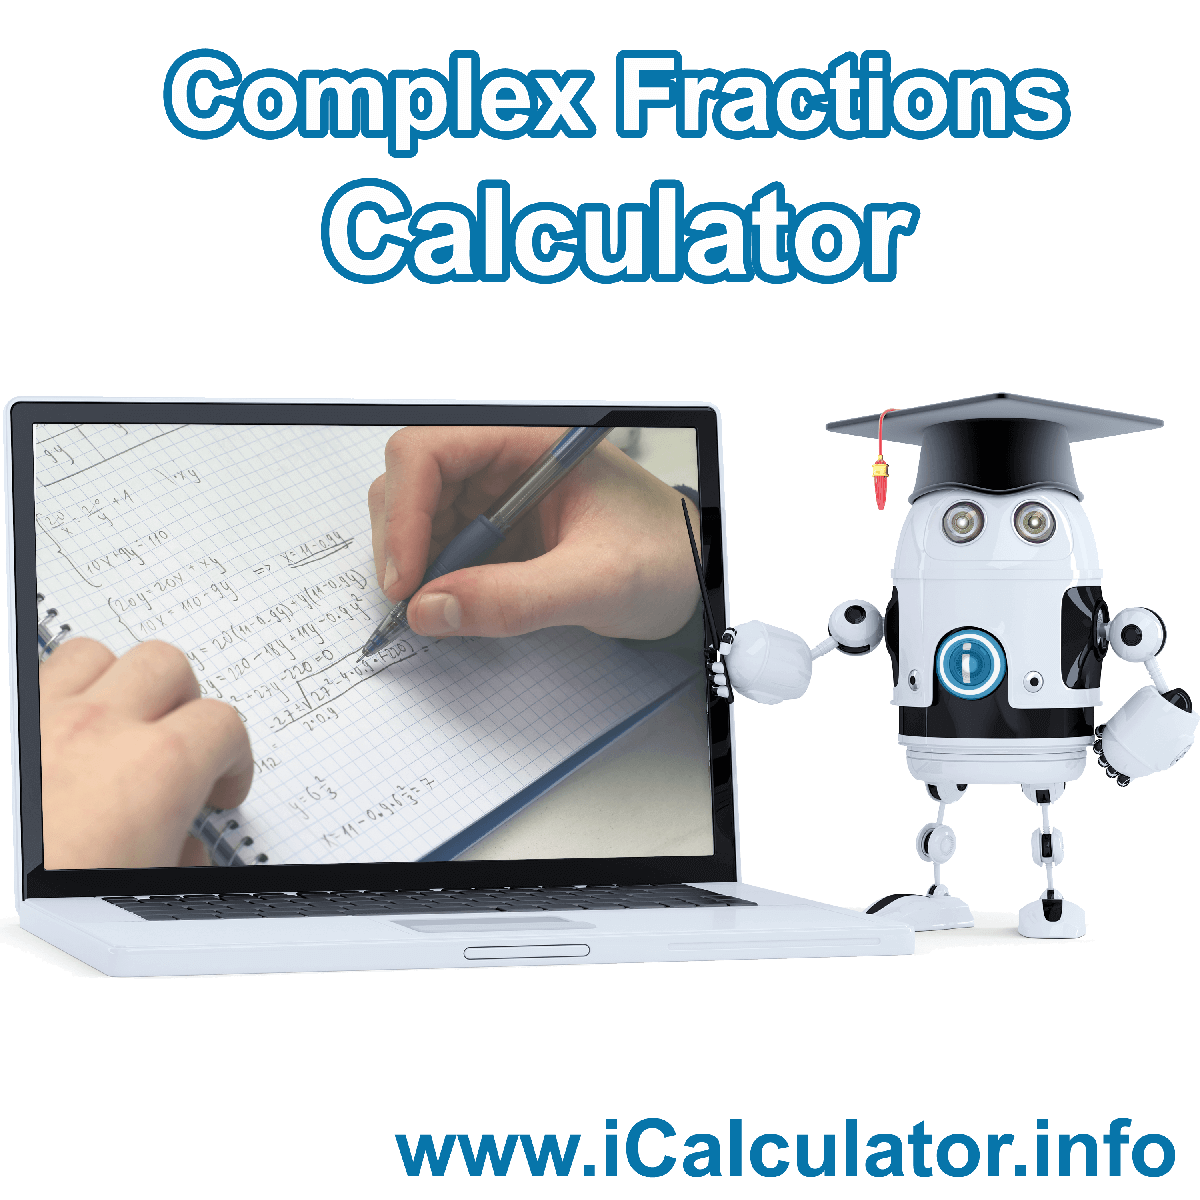 Simplifying Complex Fractions Calculator. This image shows Simplifying Complex Fractions formula with associated calculations used by the Simplifying Complex Fractions Calculator